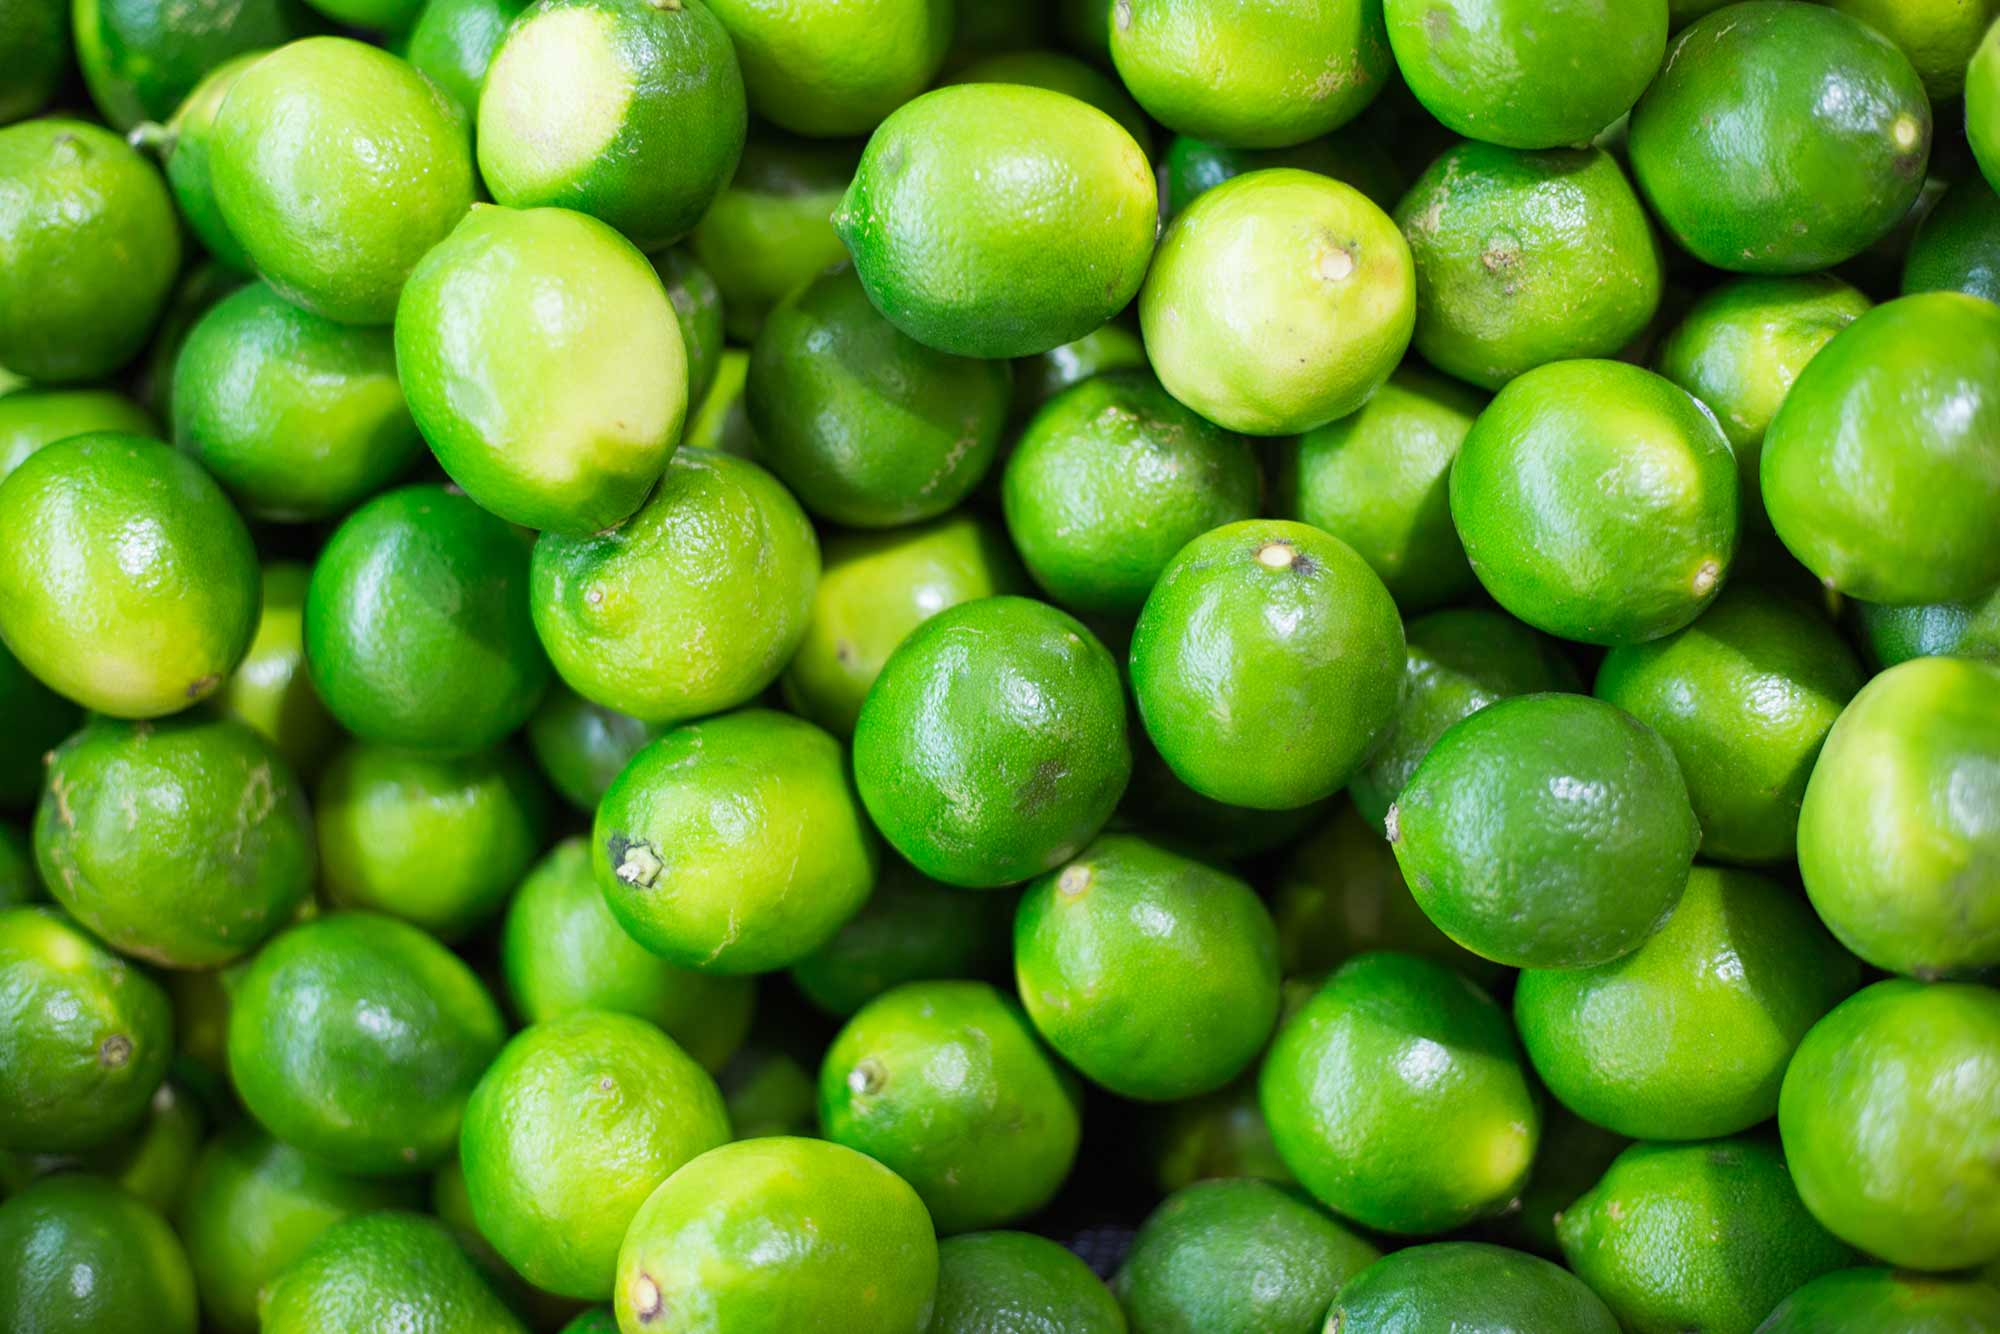 pile-of-green-limes-on-market-pattern-picjumbo-com.jpg